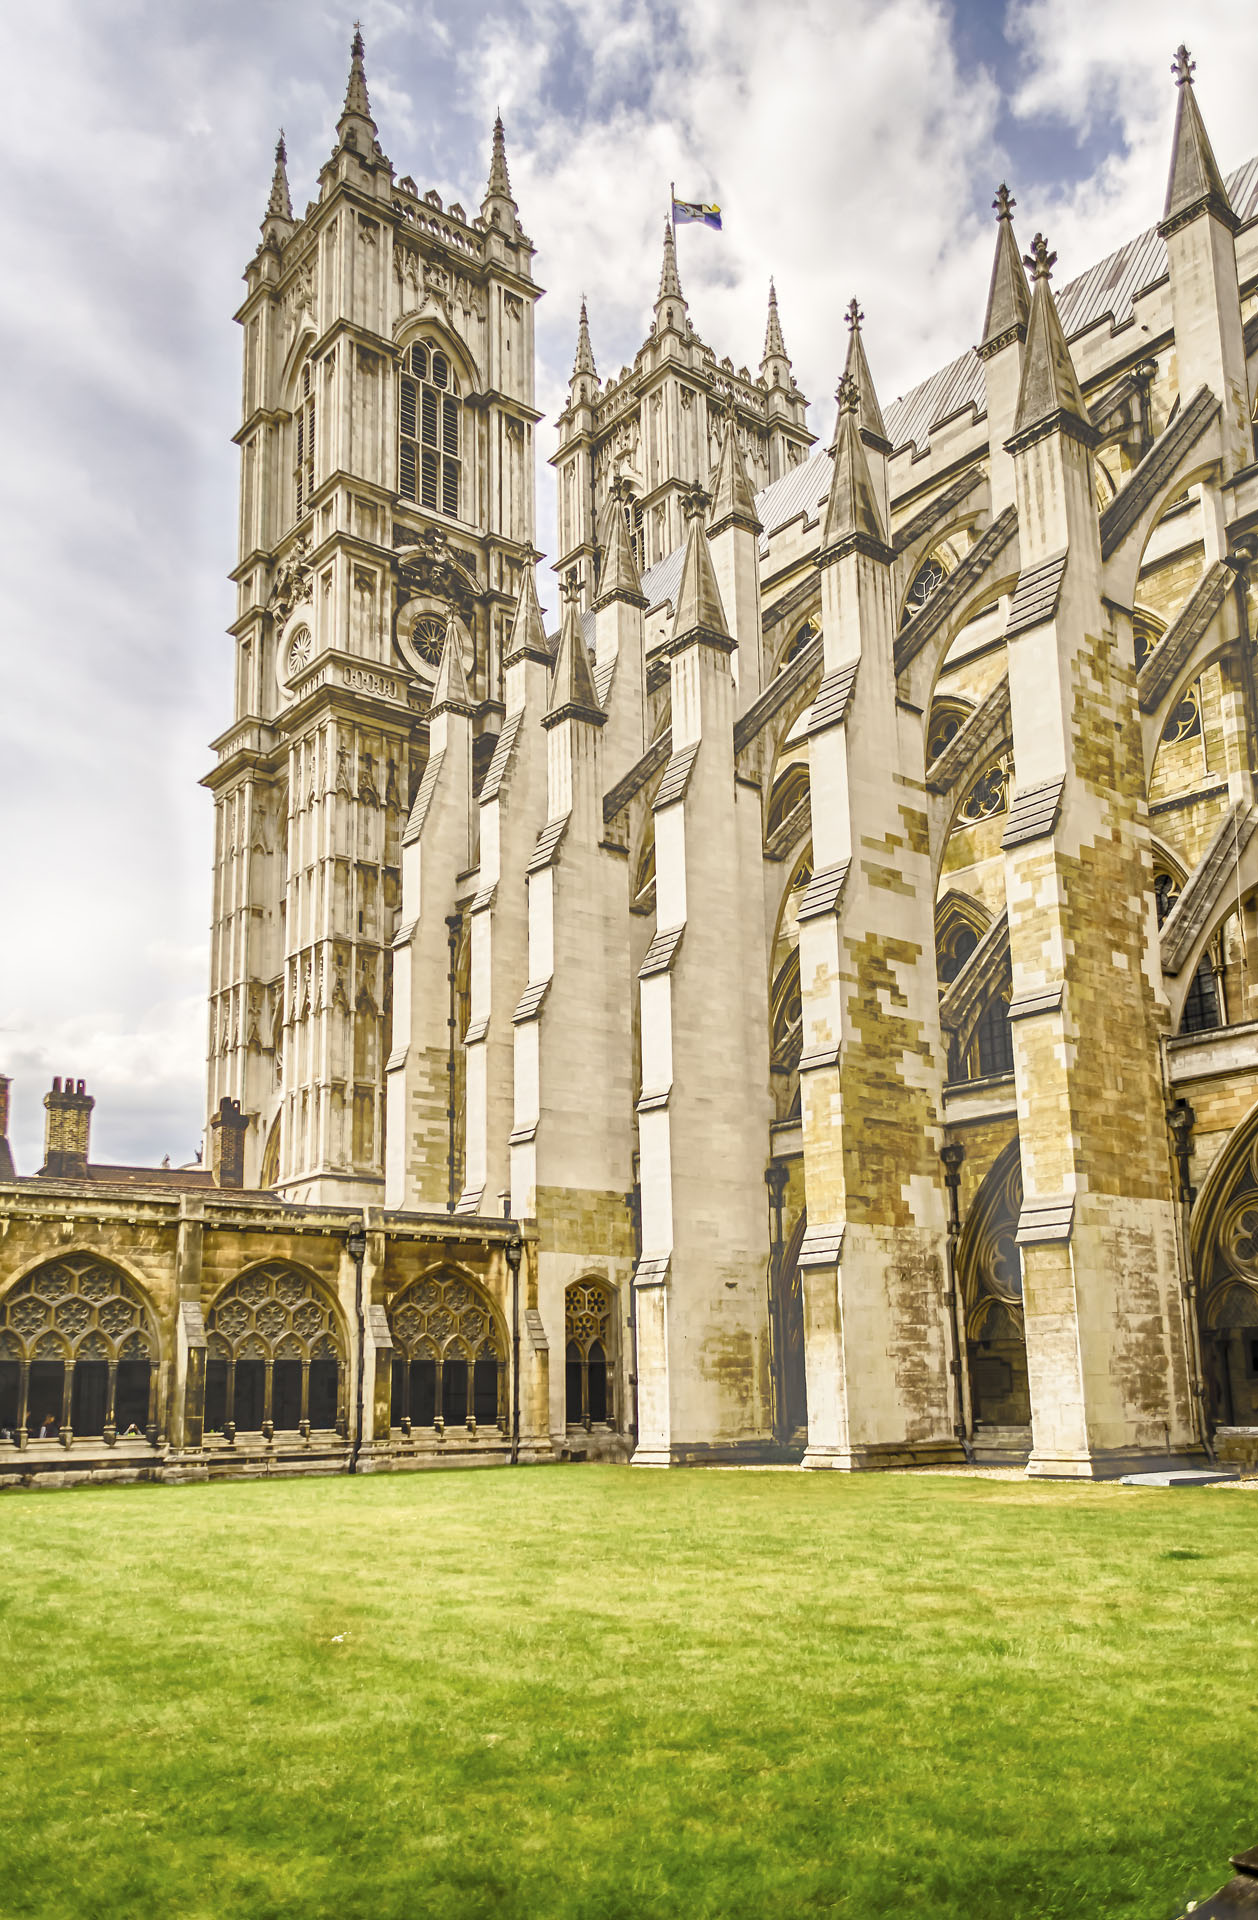 Cloister of the Westminster Abbey, London, UK